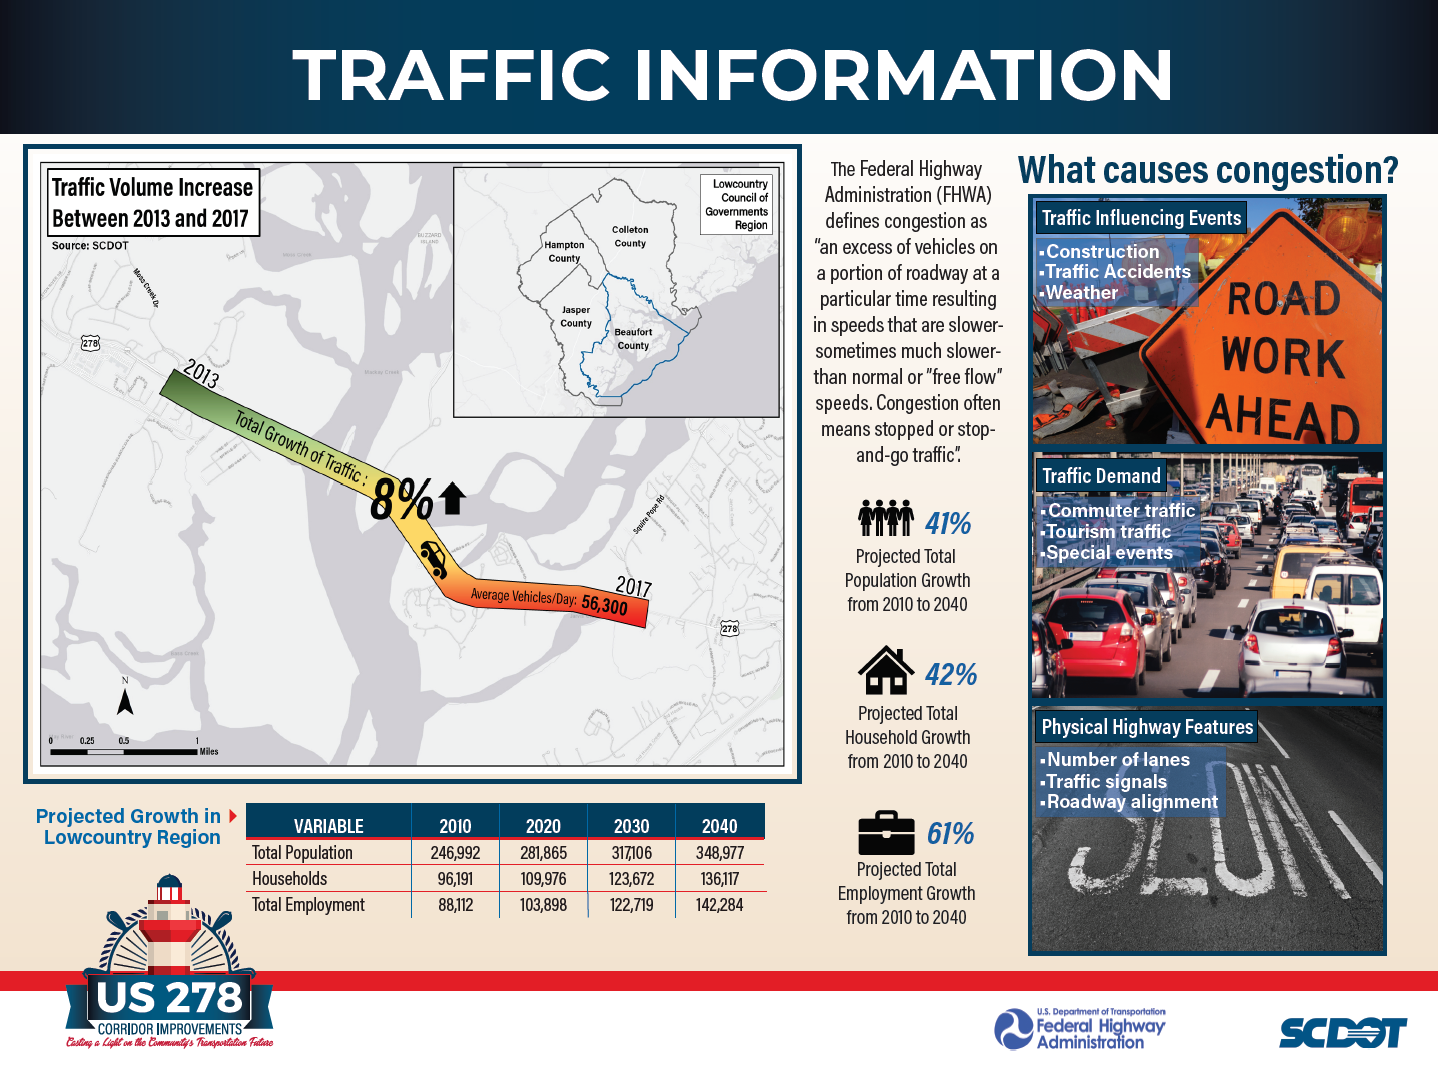 Traffic Information - This board presents information on traffic growth on the corridor from 2013 to 2017. The board also shows projected population, household, and employment growth numbers in the Lowcountry Region, which comprises the four counties that comprise the Lowcountry Council of Governments region (Beaufort, Jasper, Colleton, and Hampton counties). Lastly, information on congestion and its causes is displayed.